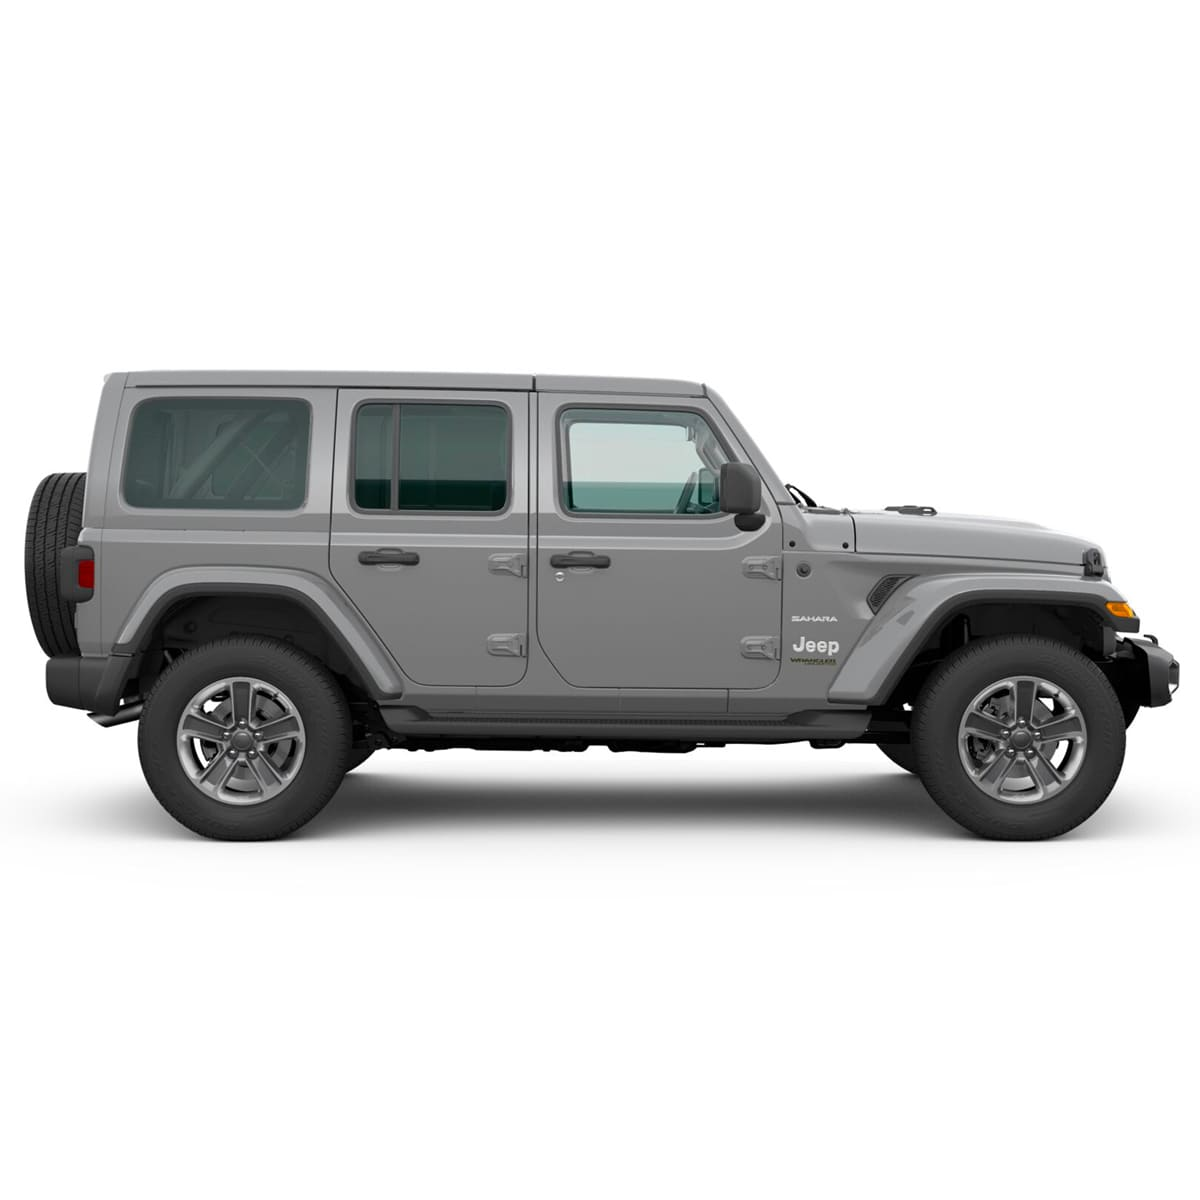 Jeep ALL NEW WRANGLER UNLIMITED SAHARA 4X4 3.6L AT STING GRAY CLEAR COAT Exterior 2